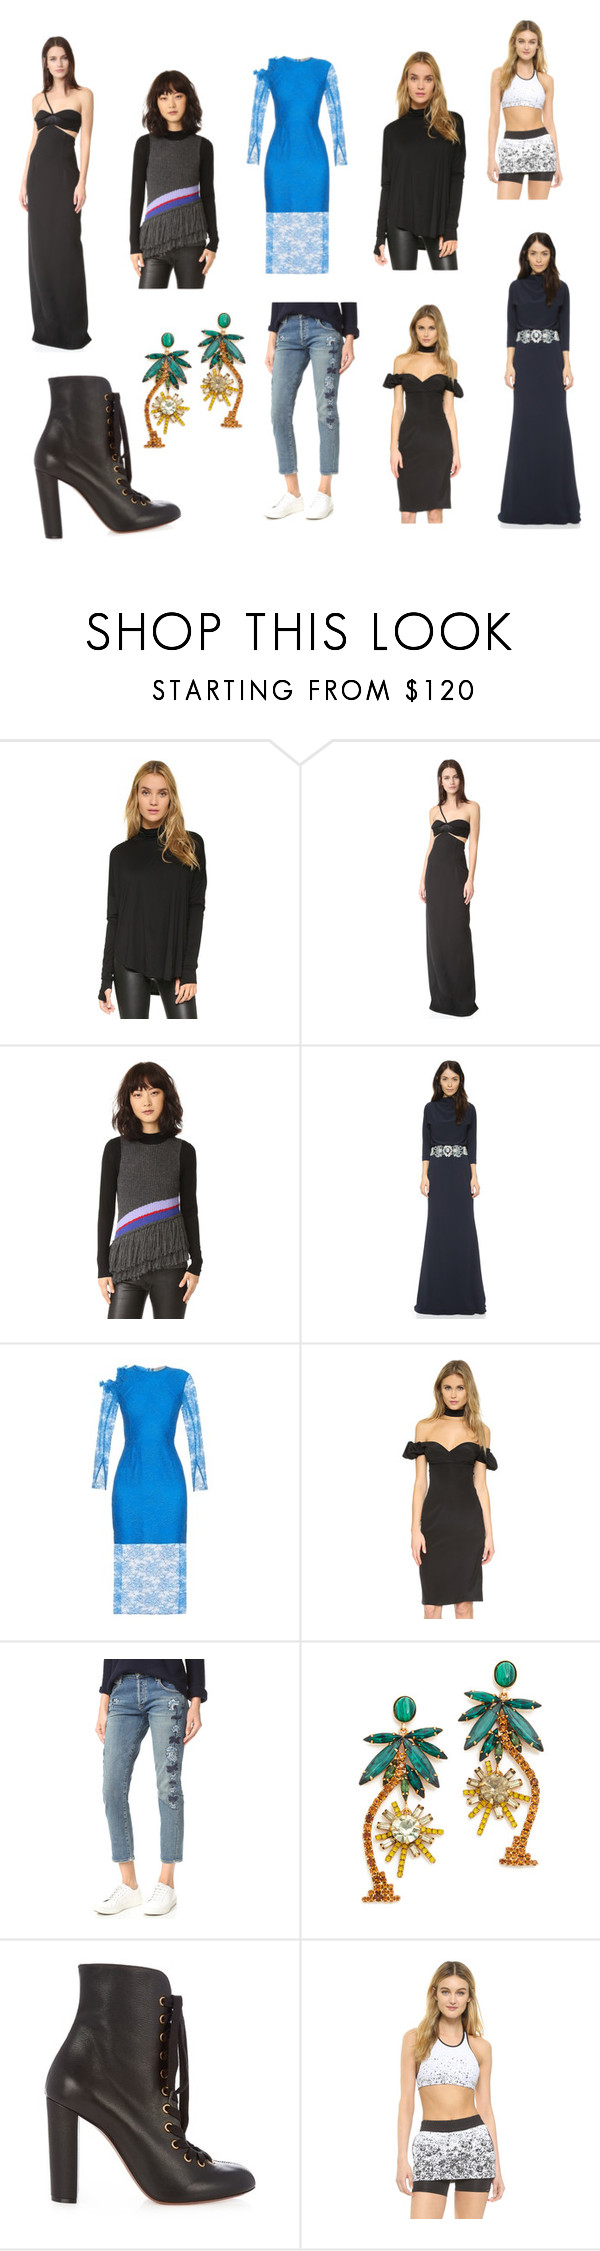 """""""fashion dreams"""" by kristen-stewart-2989 on Polyvore featuring Feel The Piece, Brandon Maxwell, Harare, Badgley Mischka, Preen, Alexis, Citizens of Humanity, Elizabeth Cole, Chloé and Koral Activewear"""